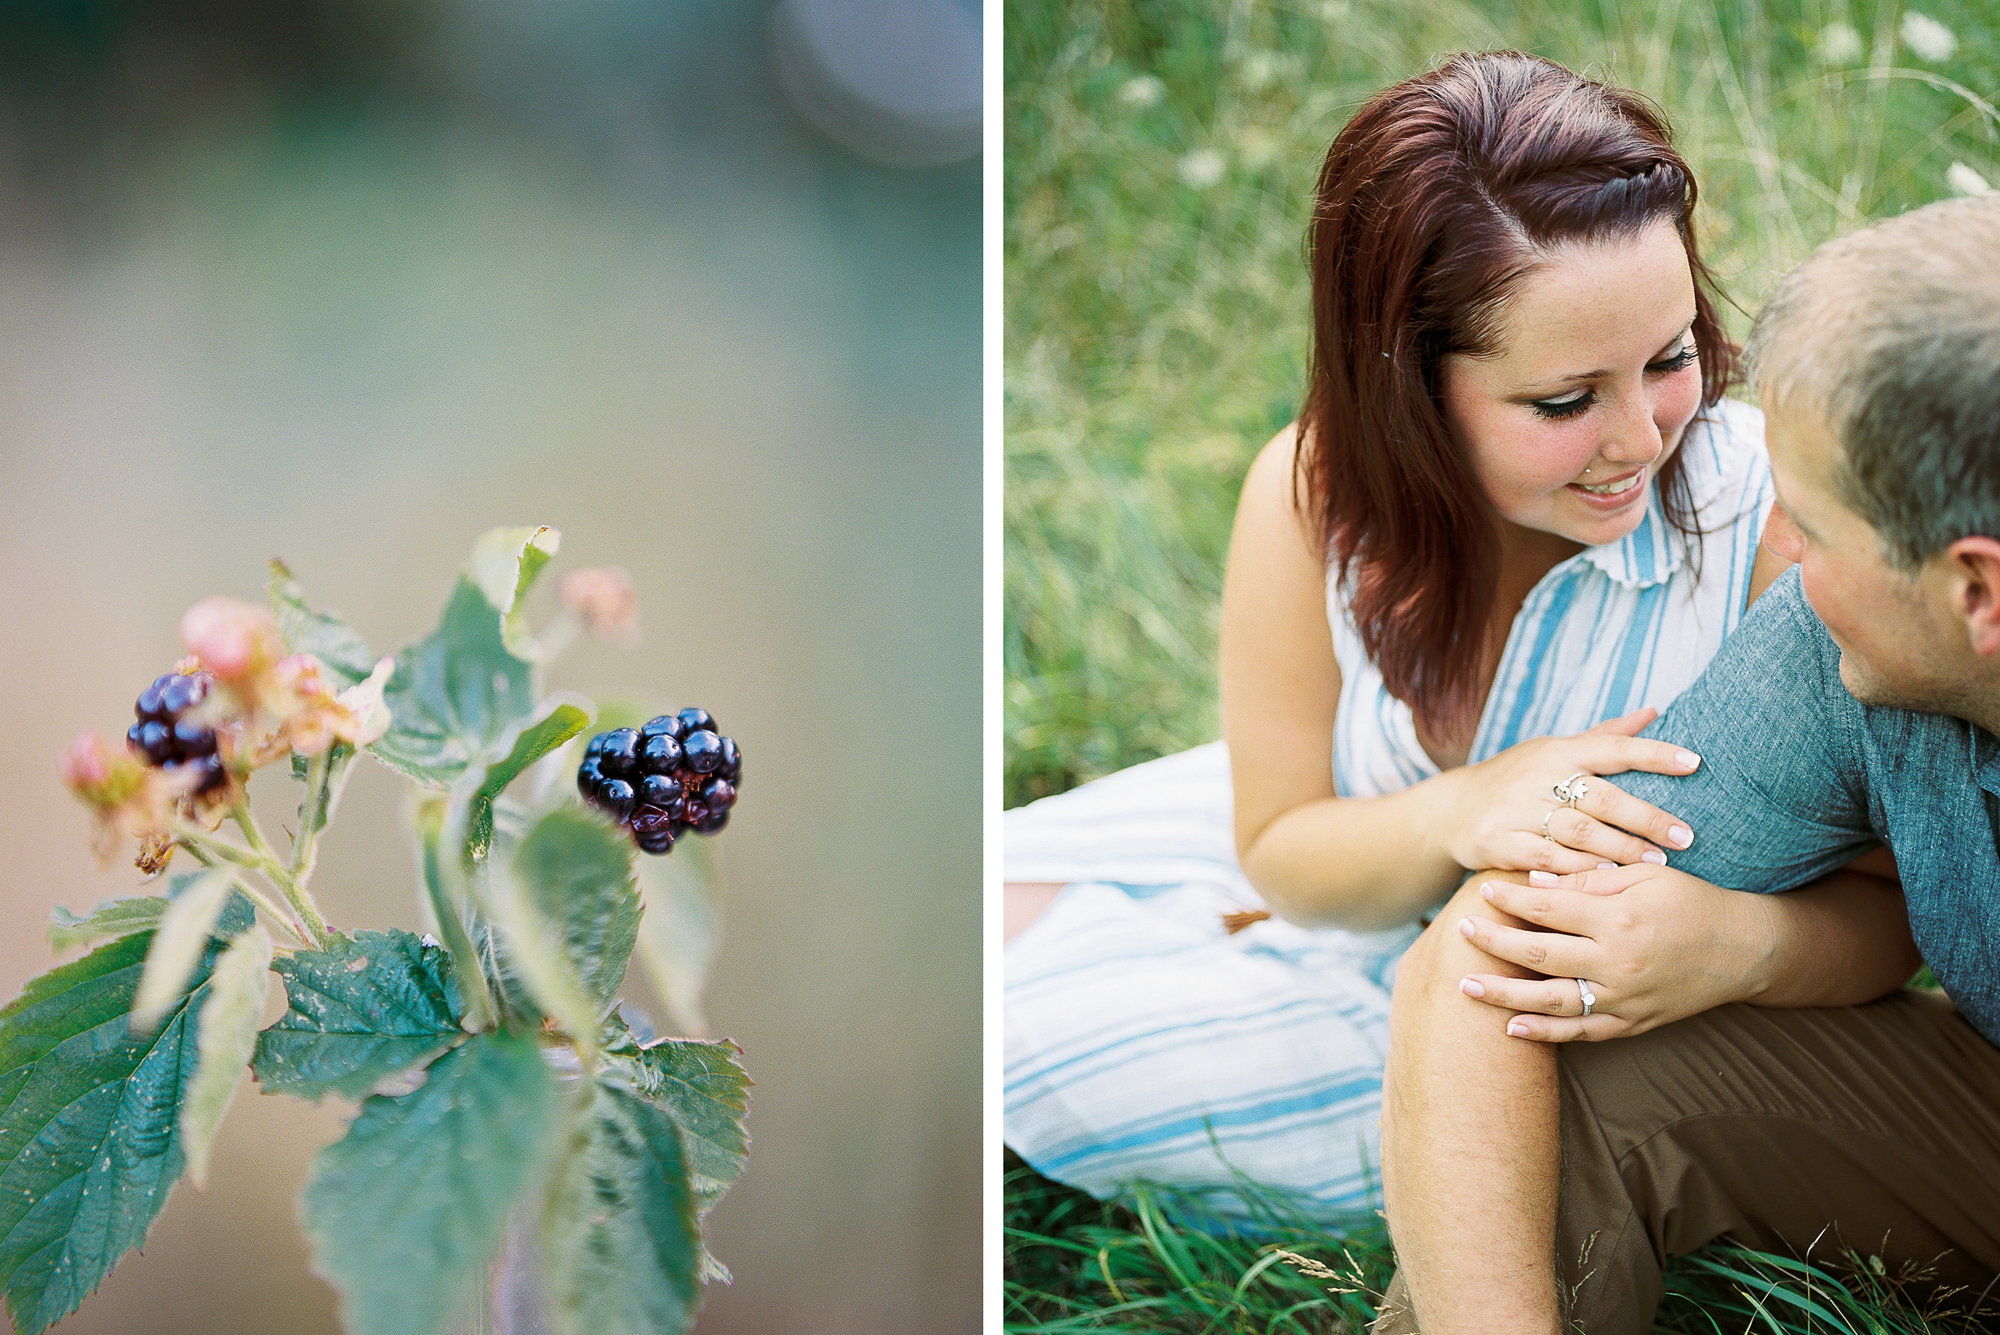 Alexandra-Elise-Photography-Ali-Reed-Film-Farm-Engagement-Session-018